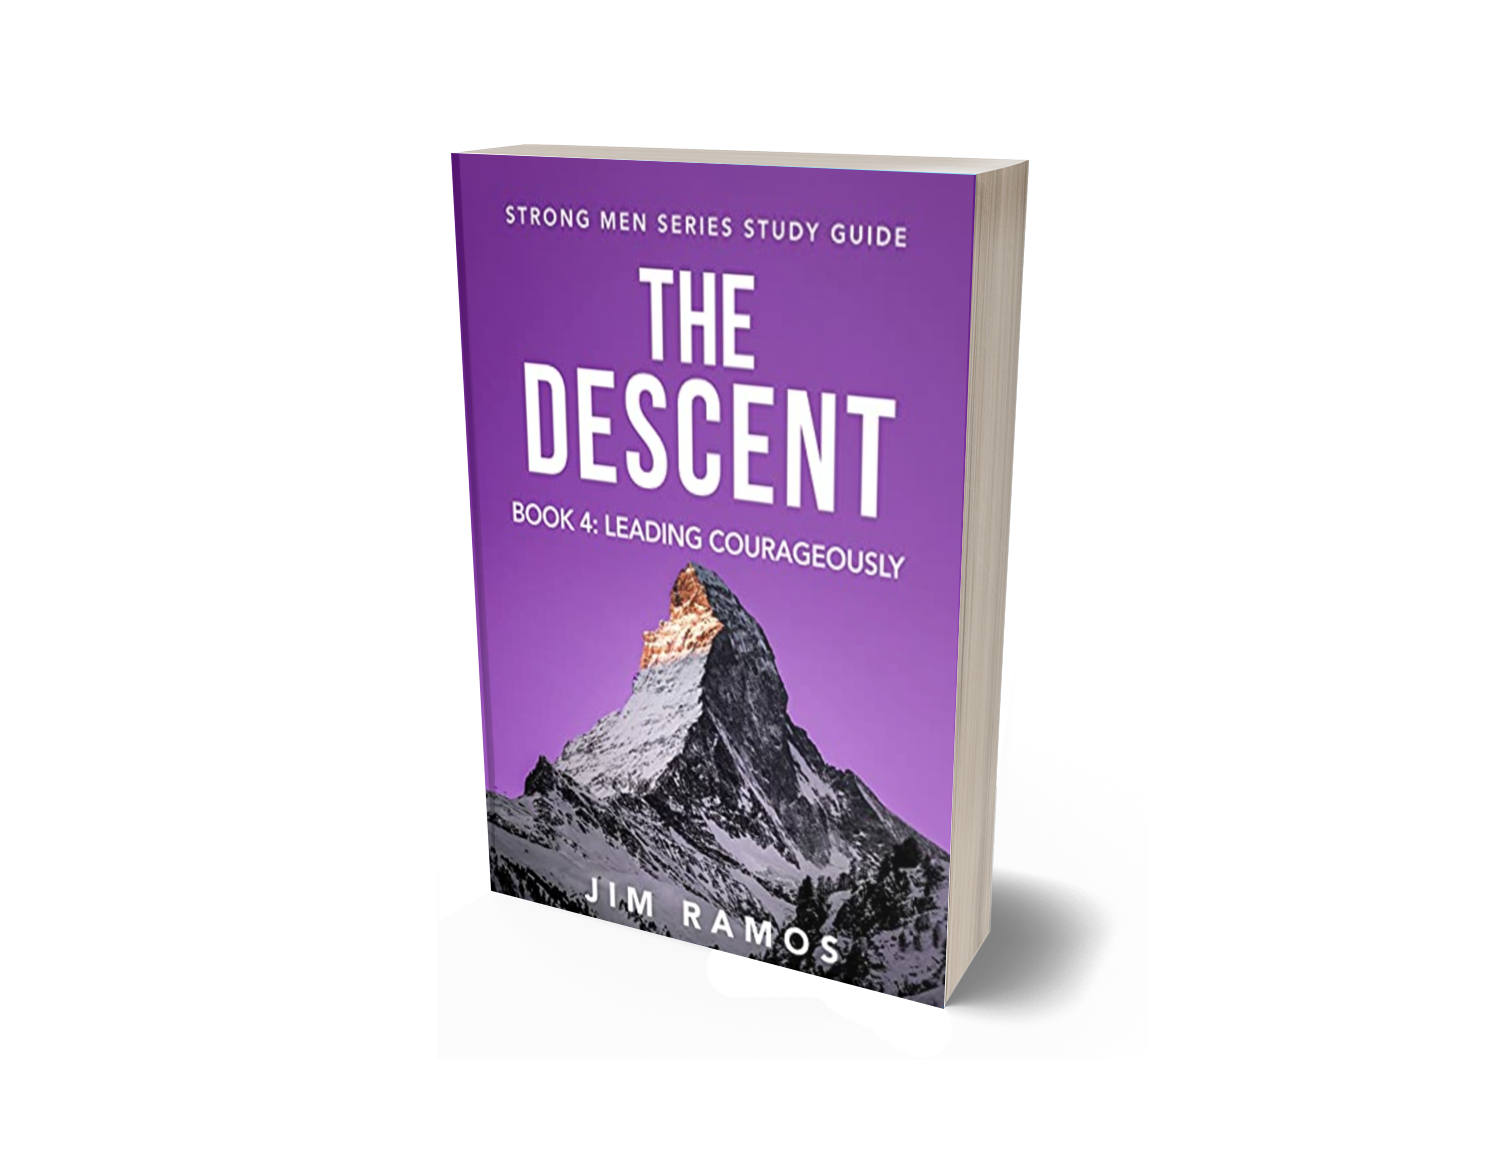 TheDescent_JimRamos_StrongMenSeries4